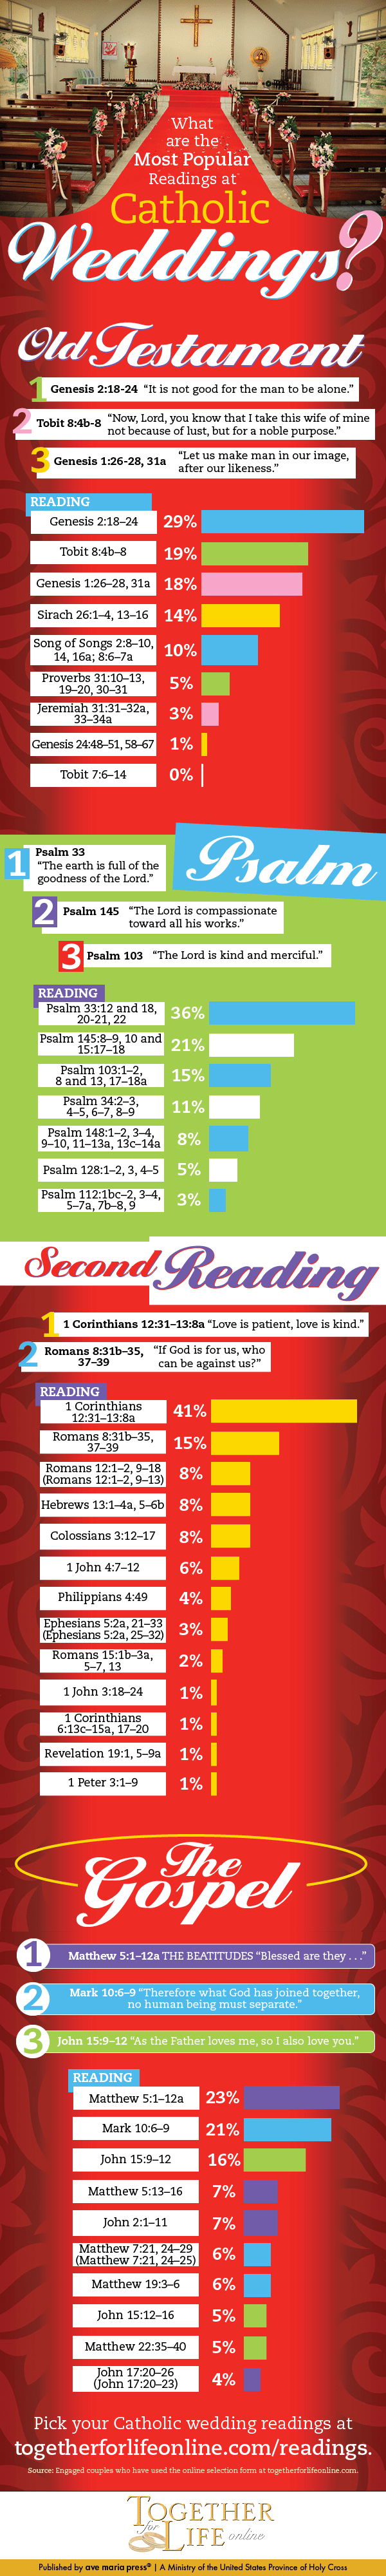 Most Popular Catholic Wedding Readings